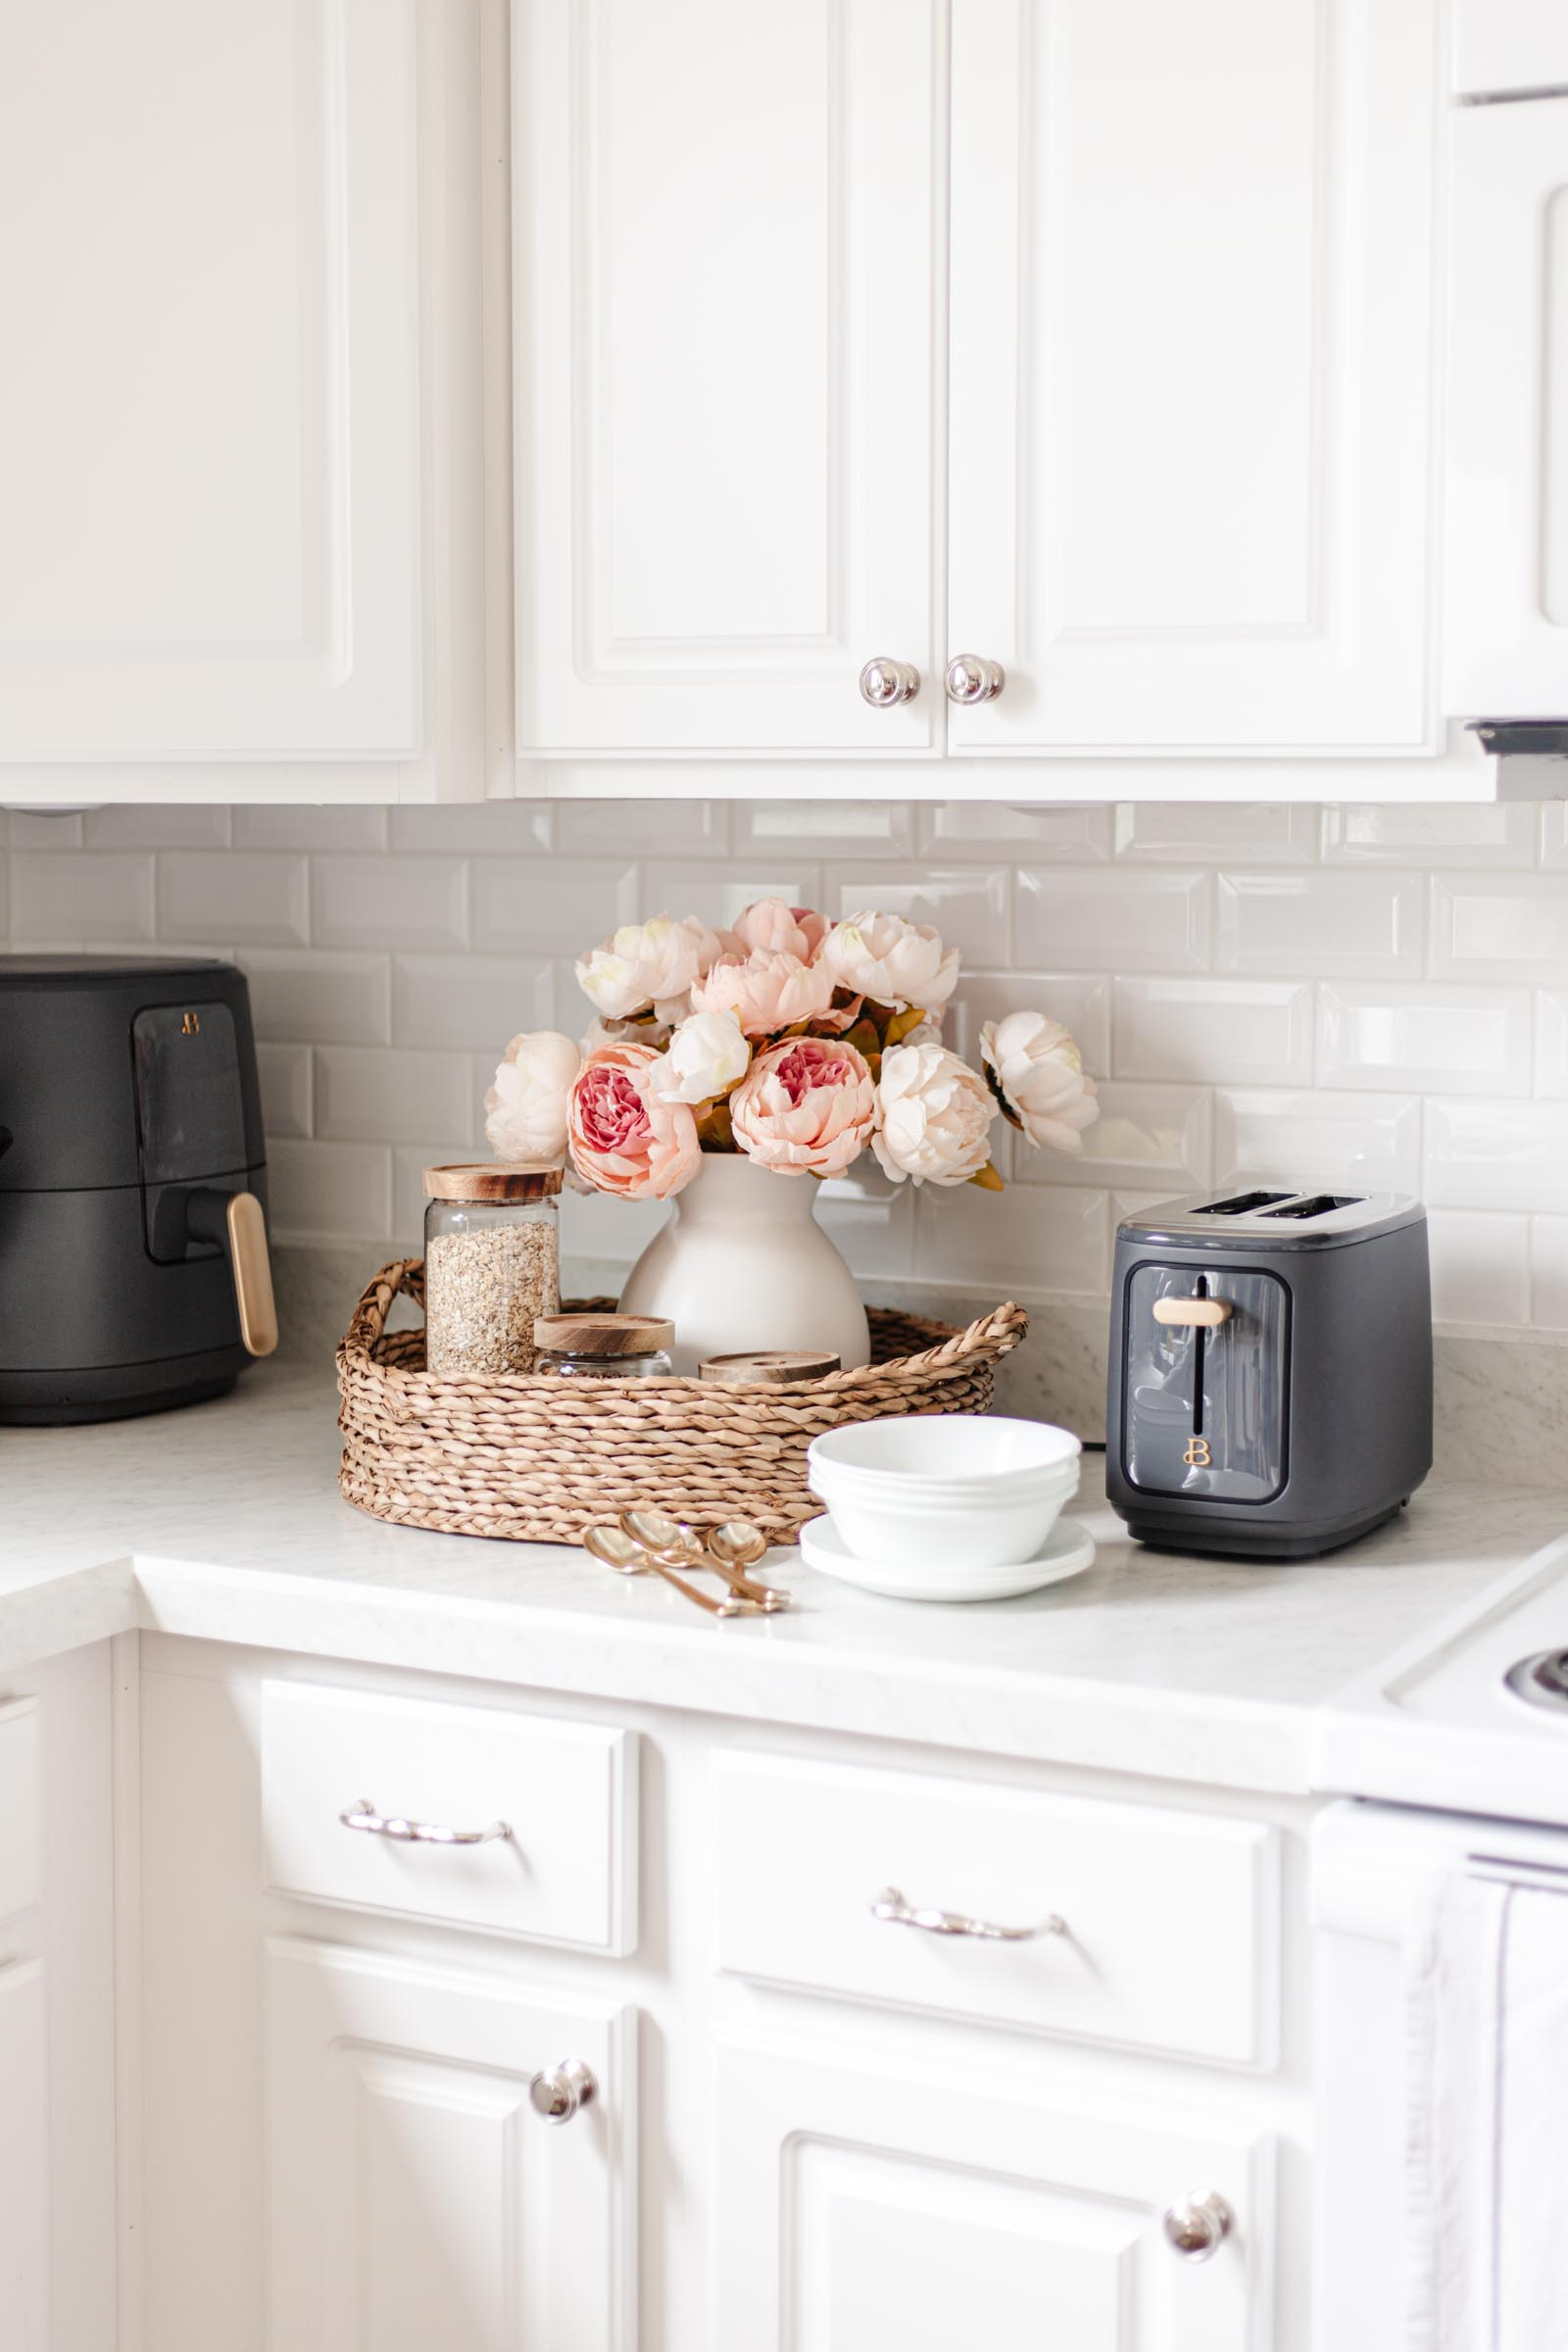 breakfast station for hosting guests, beautiful touchscreen toaster from Walmart, water hyacinth woven tray, glass canister set, white ceramic vase